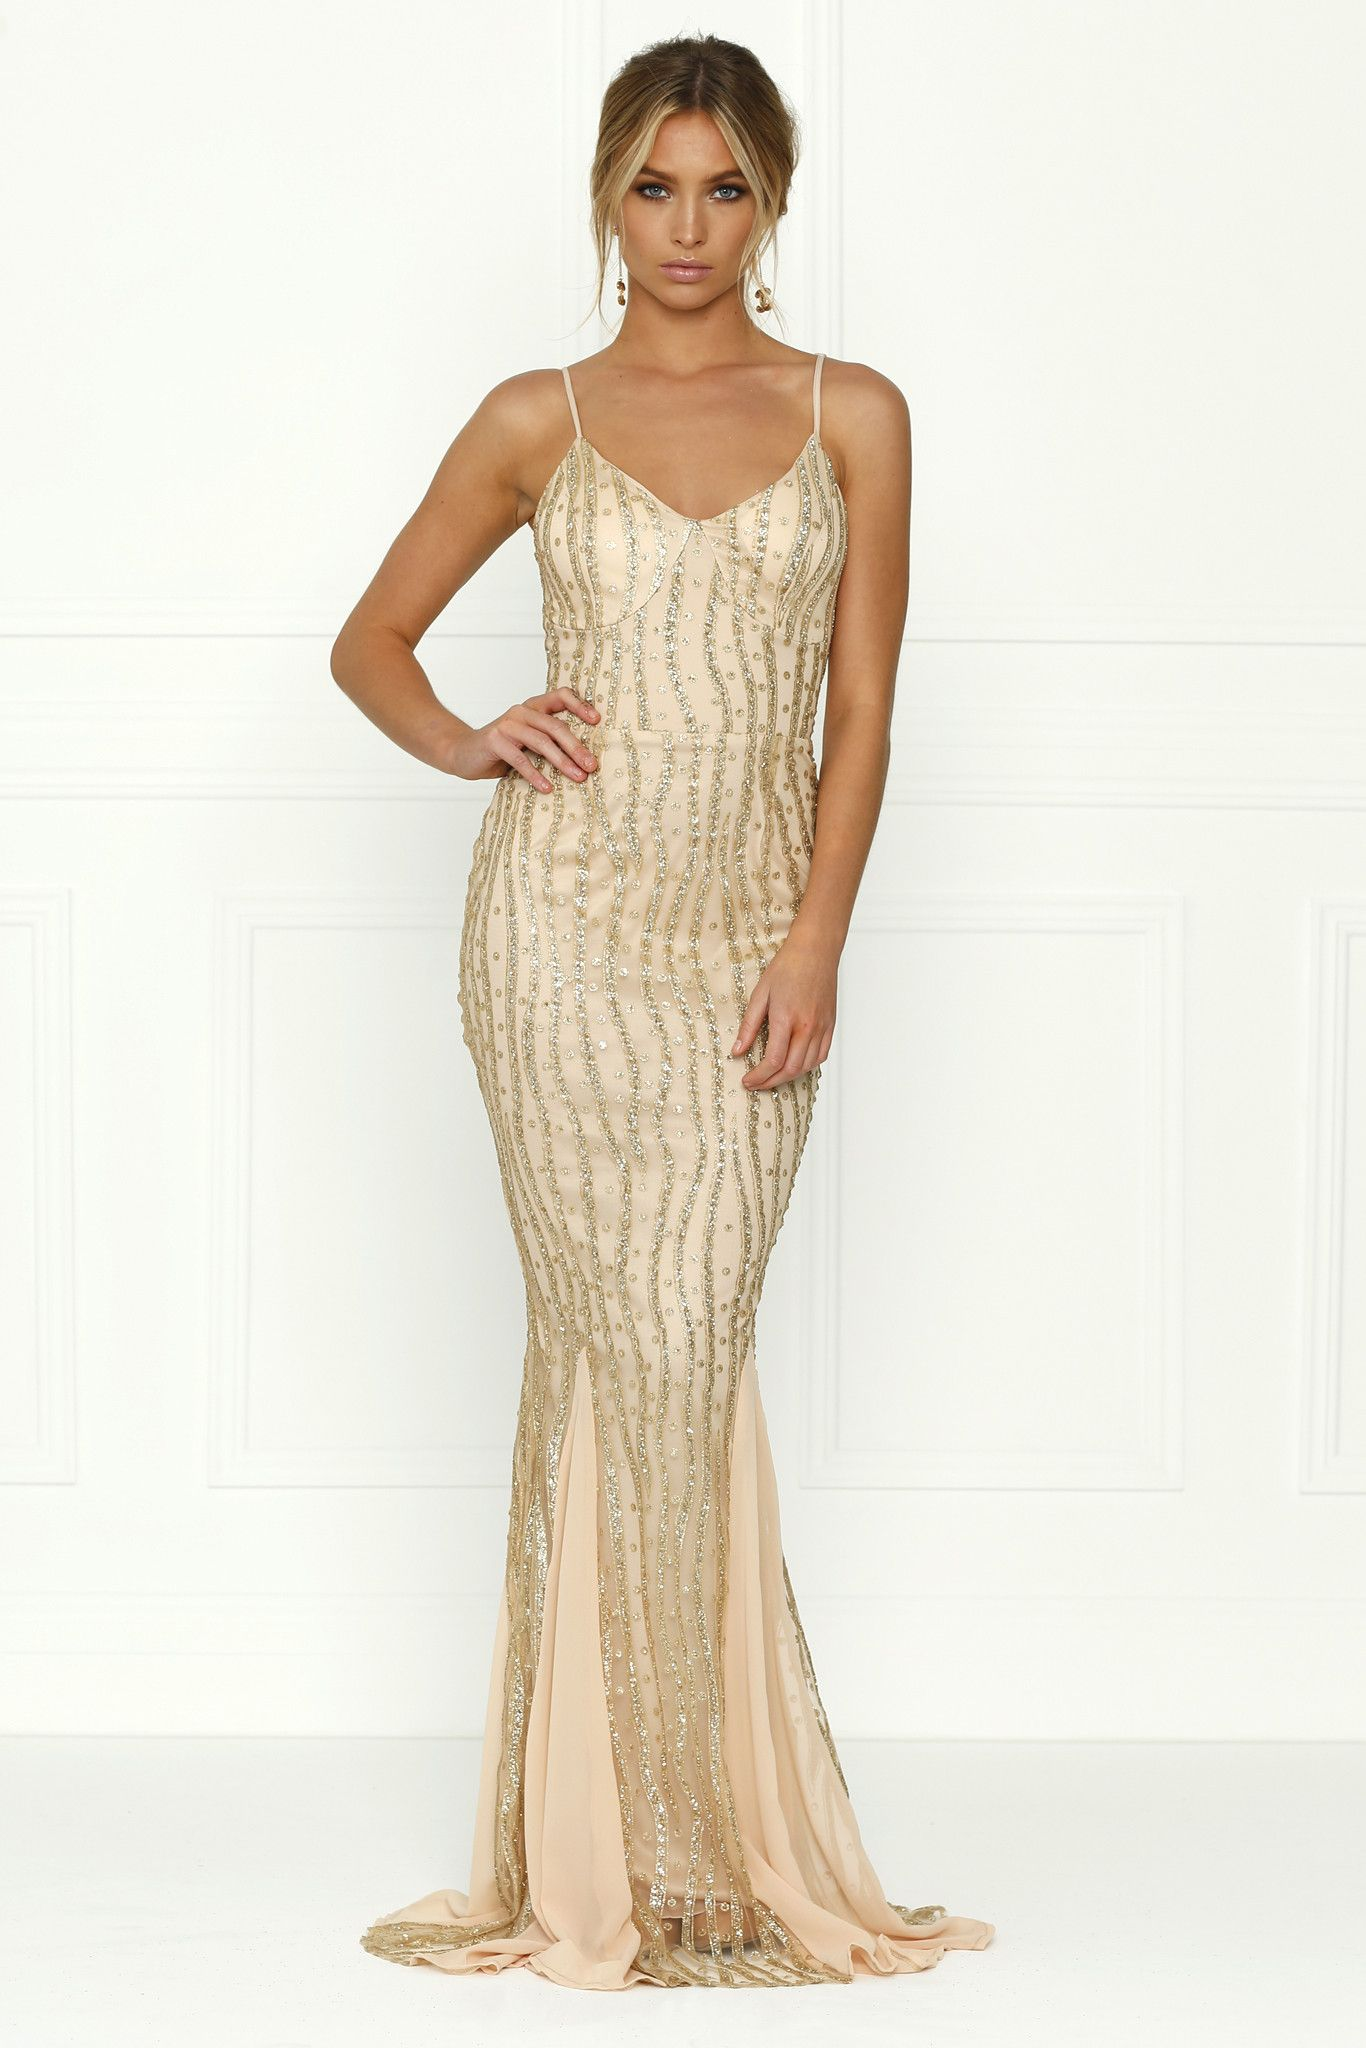 Honey Couture BRIELLE Gold Sheer Sequin w Sheer Insert Evening ...